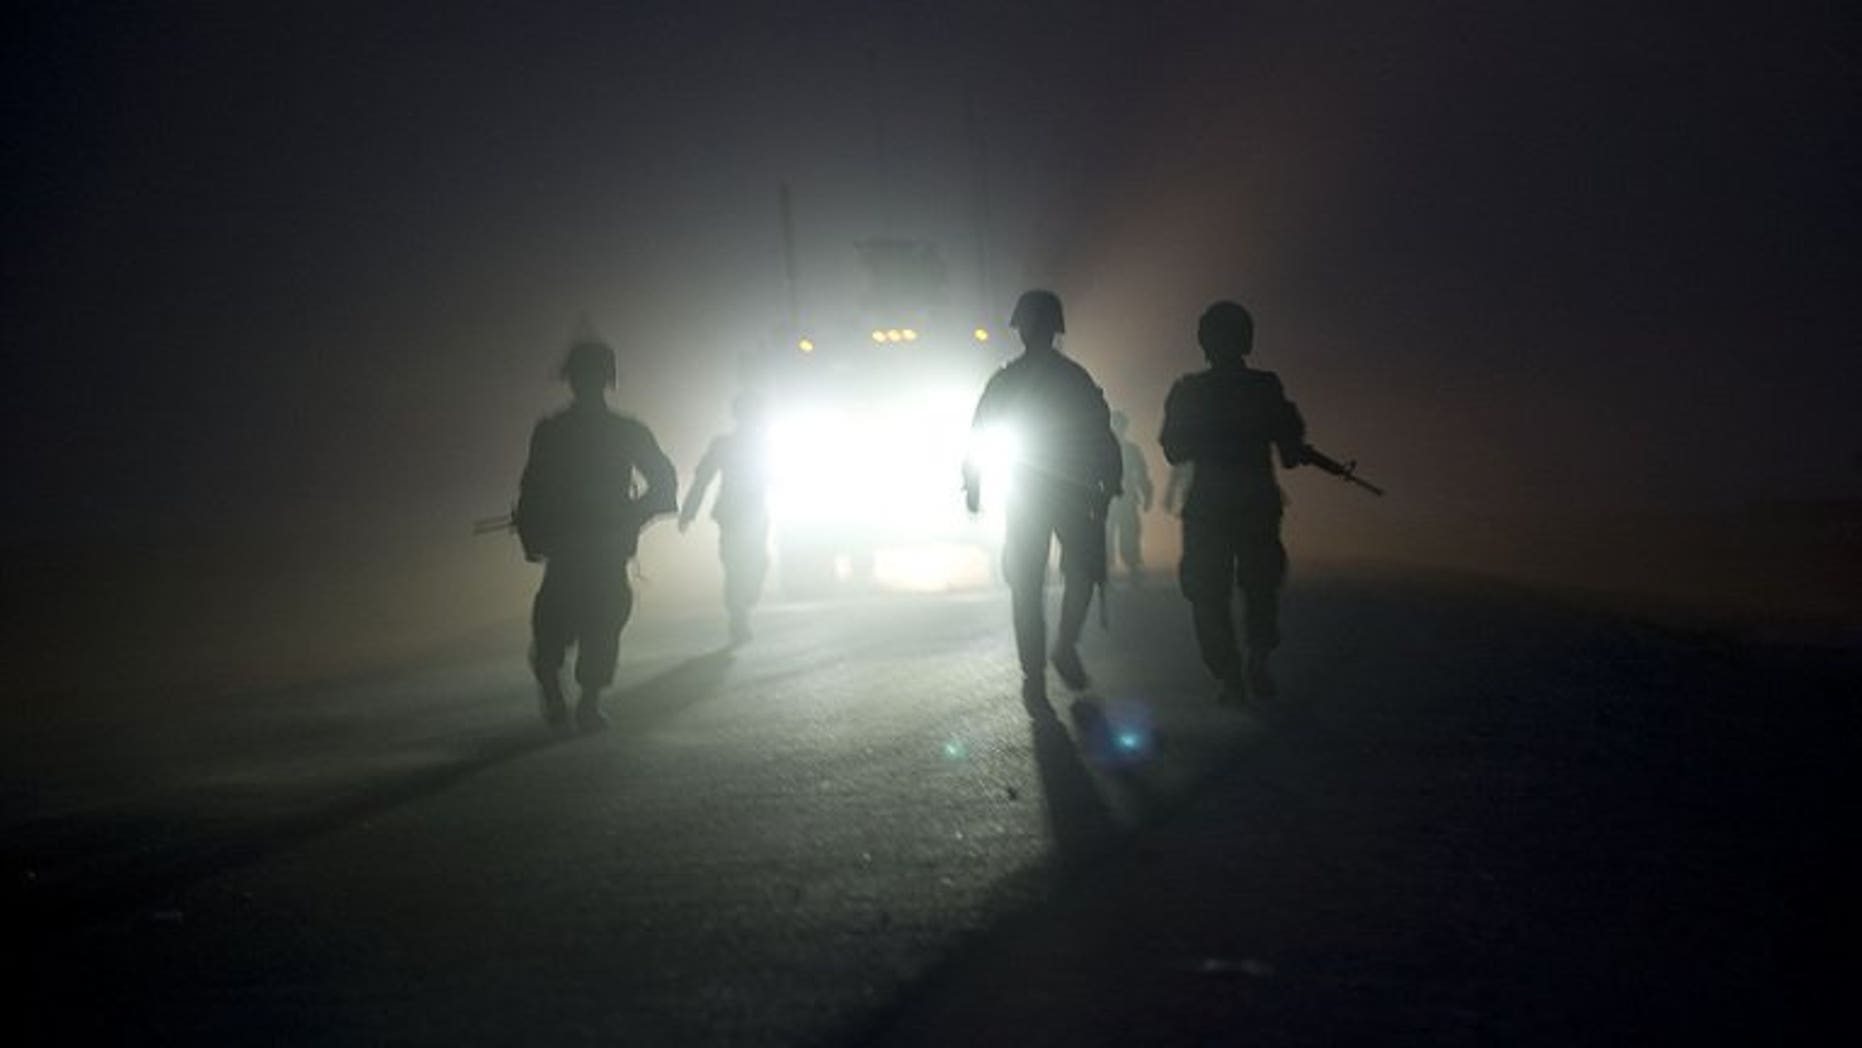 Soldiers operating under NATO command pictured during a patrol near the Morghan-Khecha village in Daman district, Afghanistan's Kandahar province, on September 8, 2012.